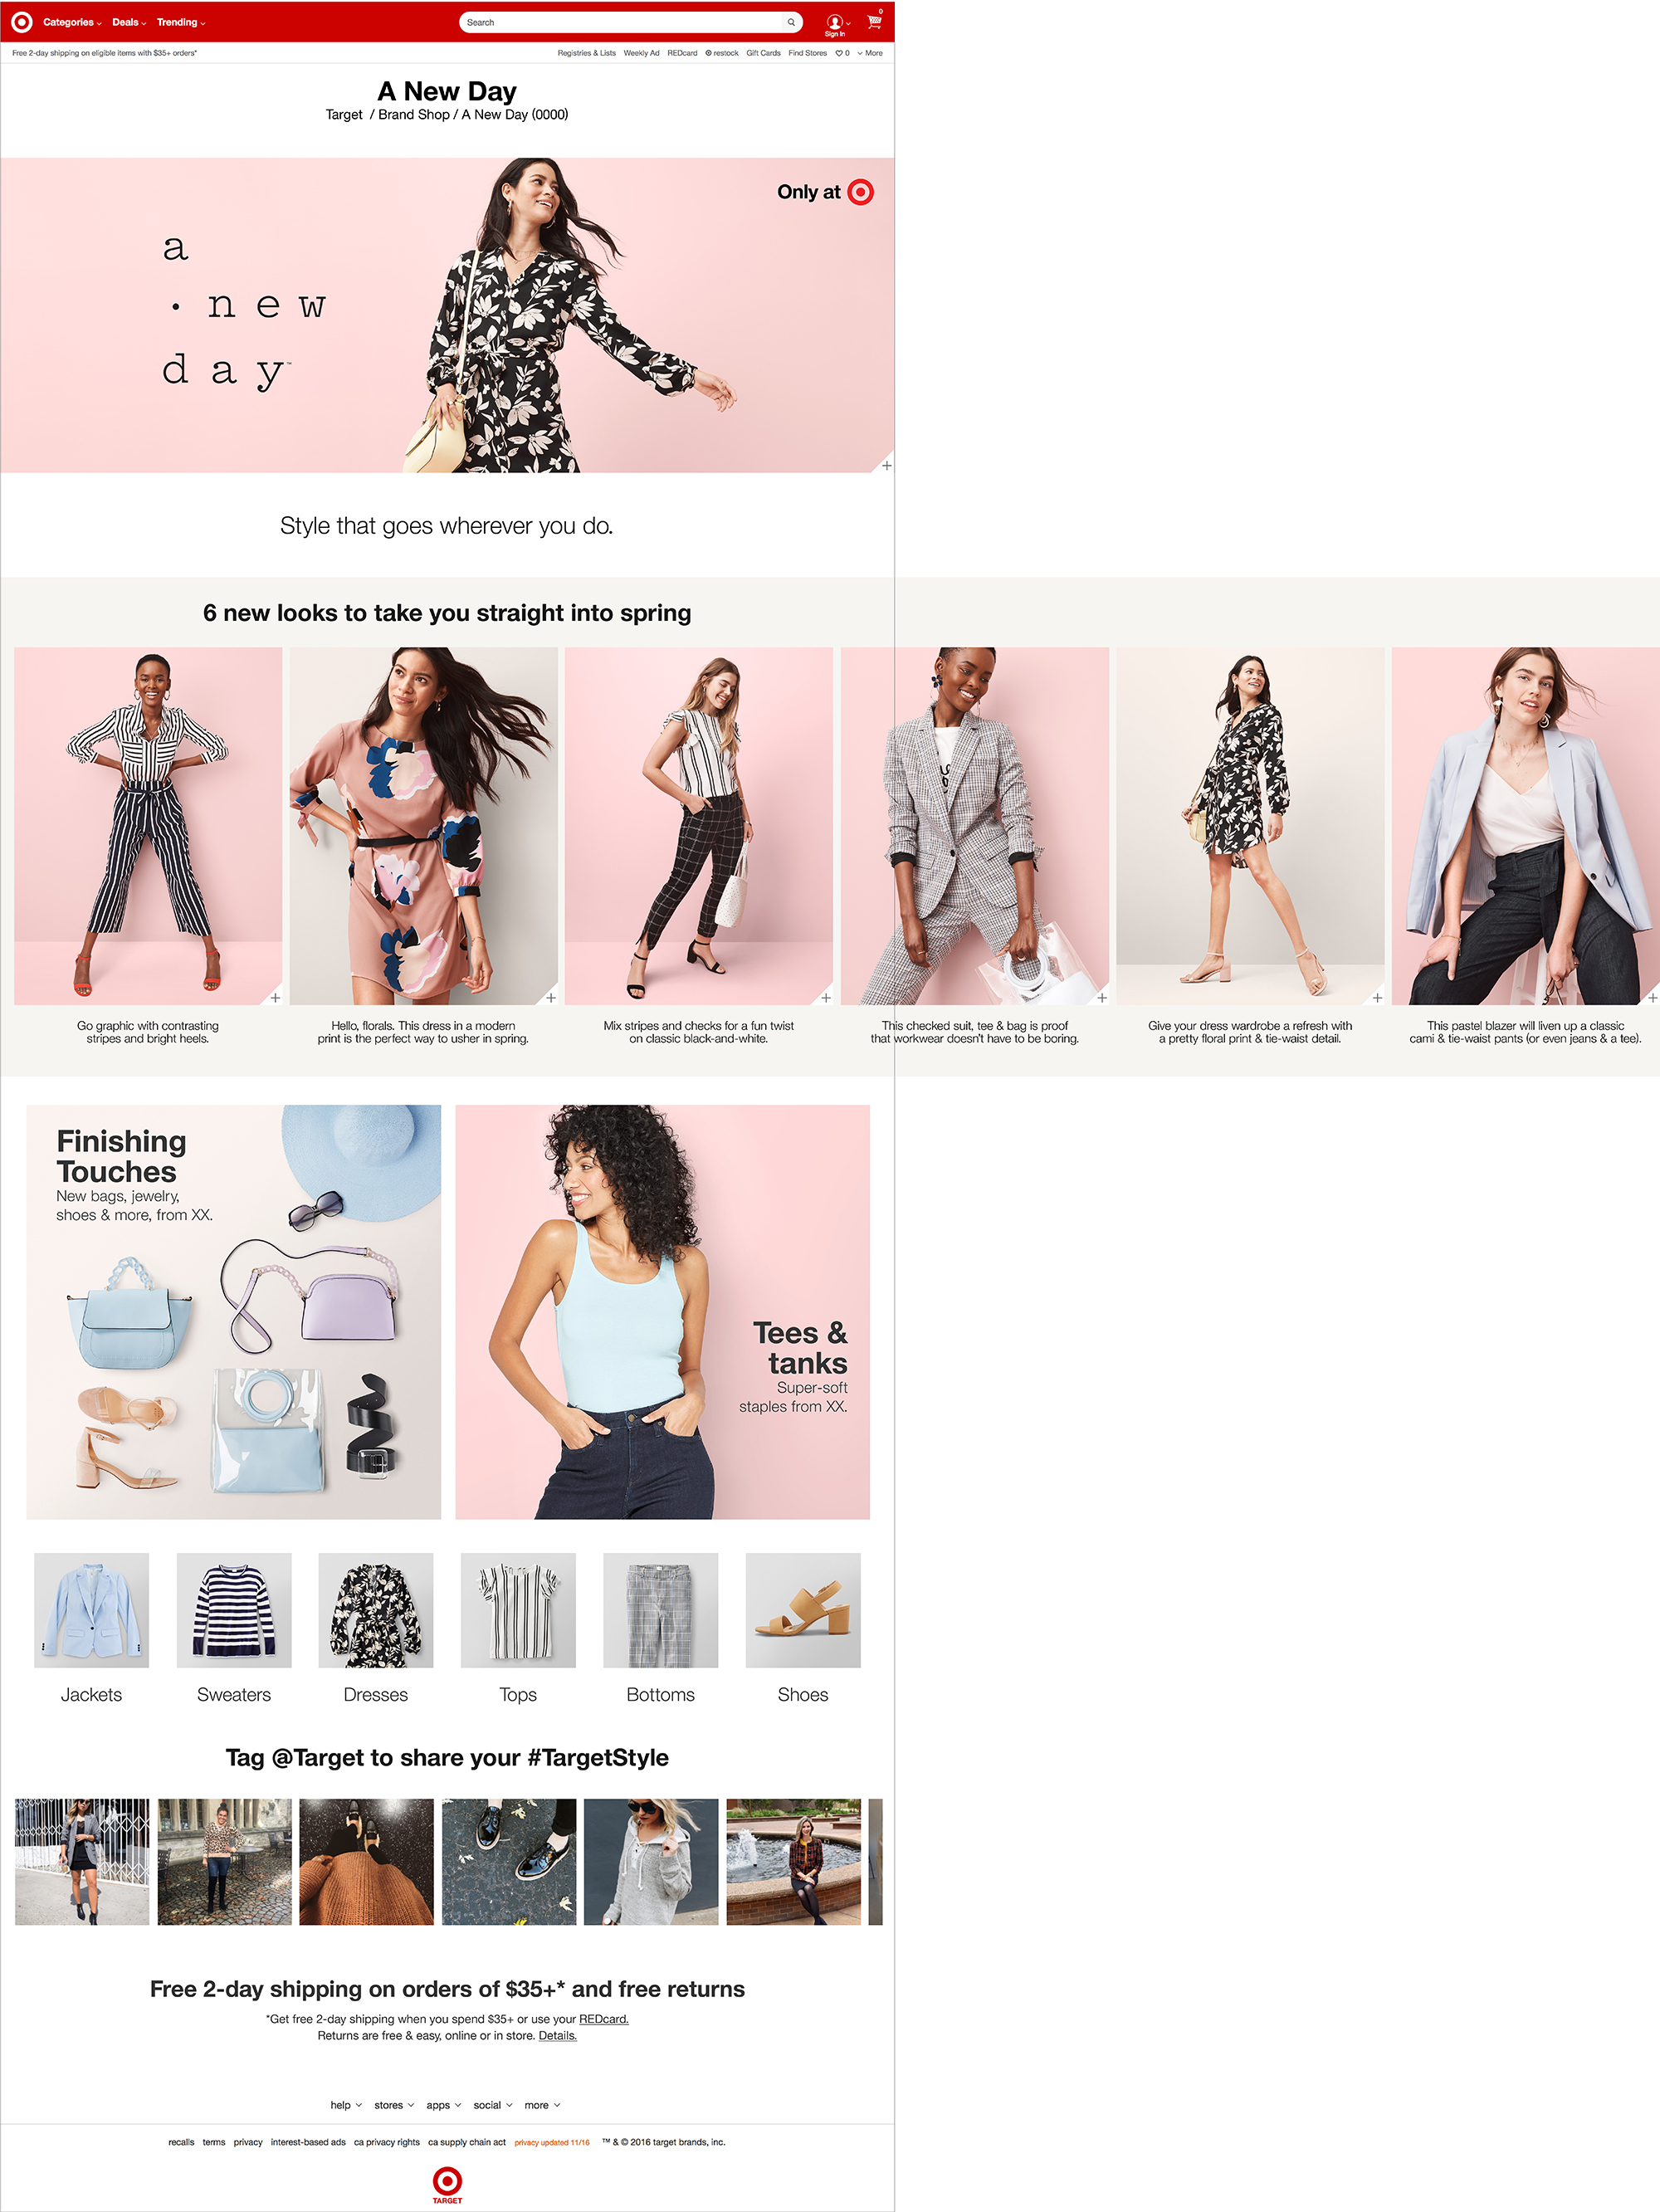 Target A New Day Brand Page